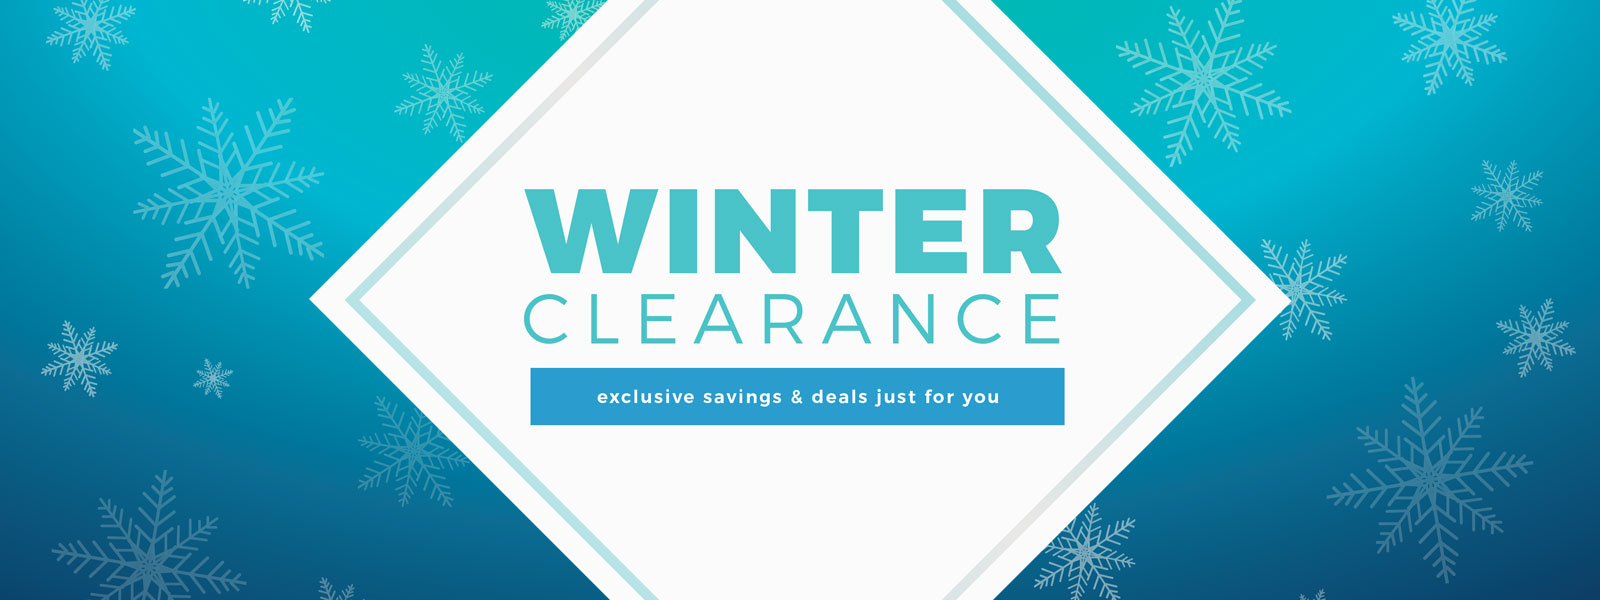 Winter-Clearance-Banner-1